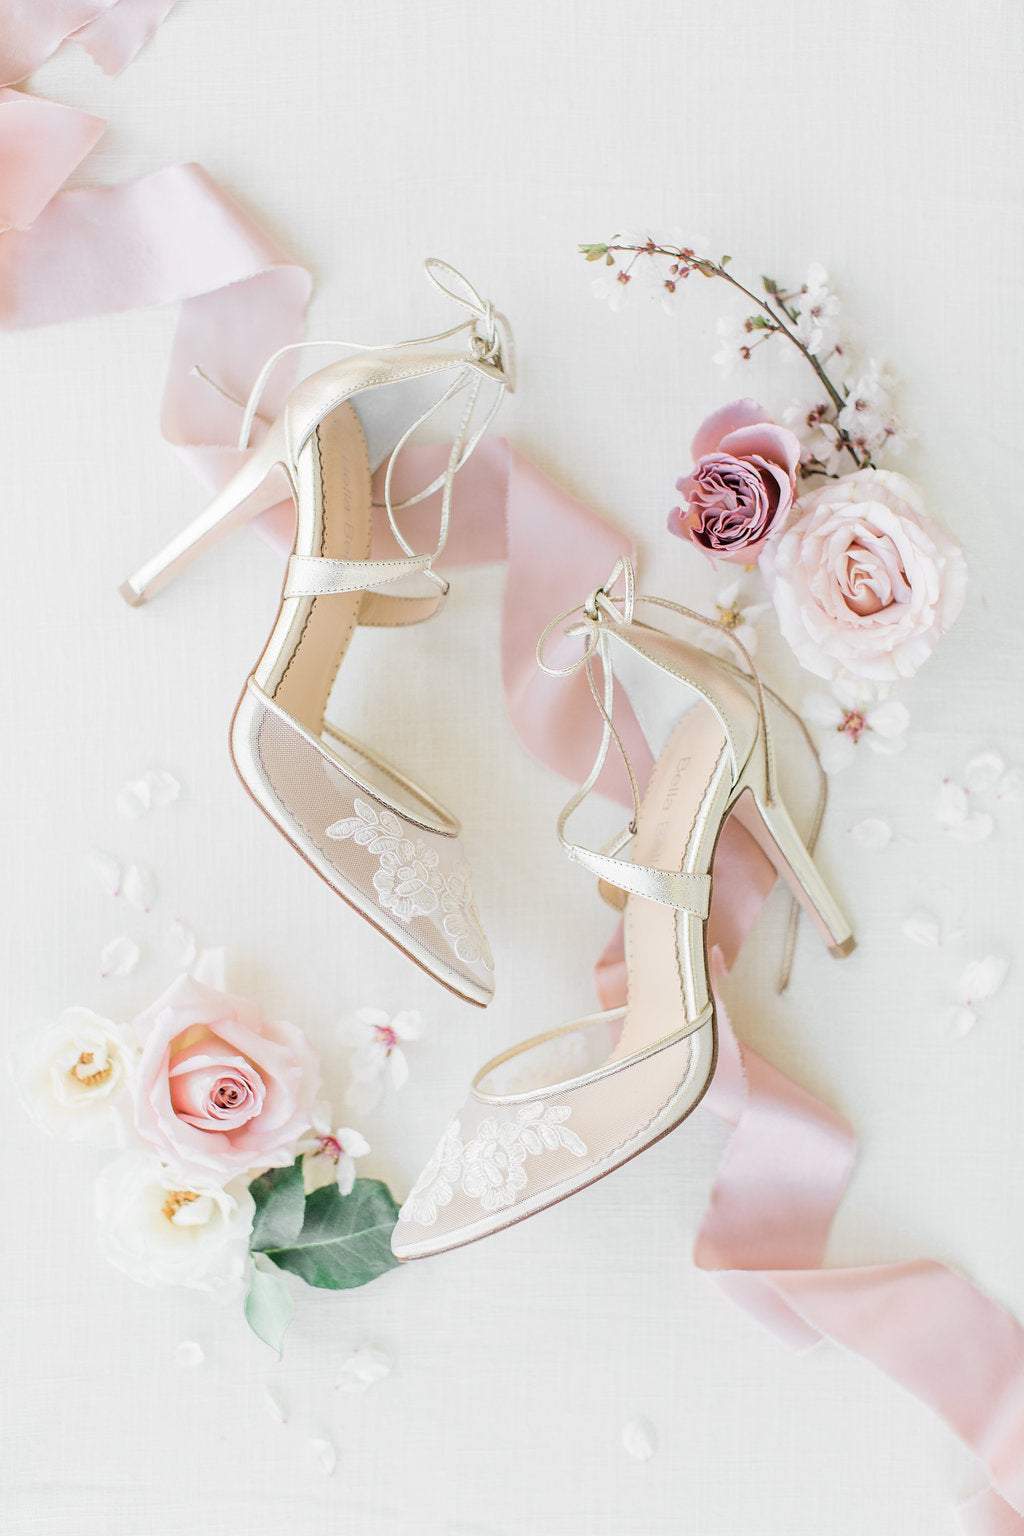 bella belle shoes anita gold lace wedding shoe